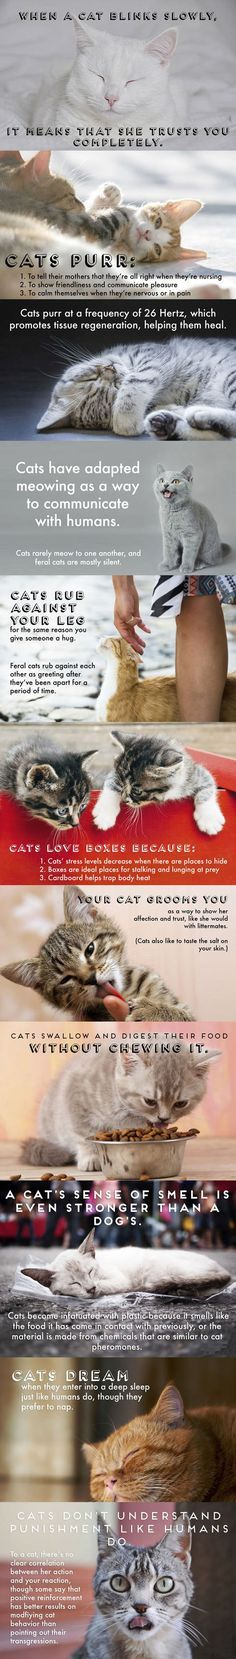 Something You Probably Didn't Know About Cats  - Catsincare.com